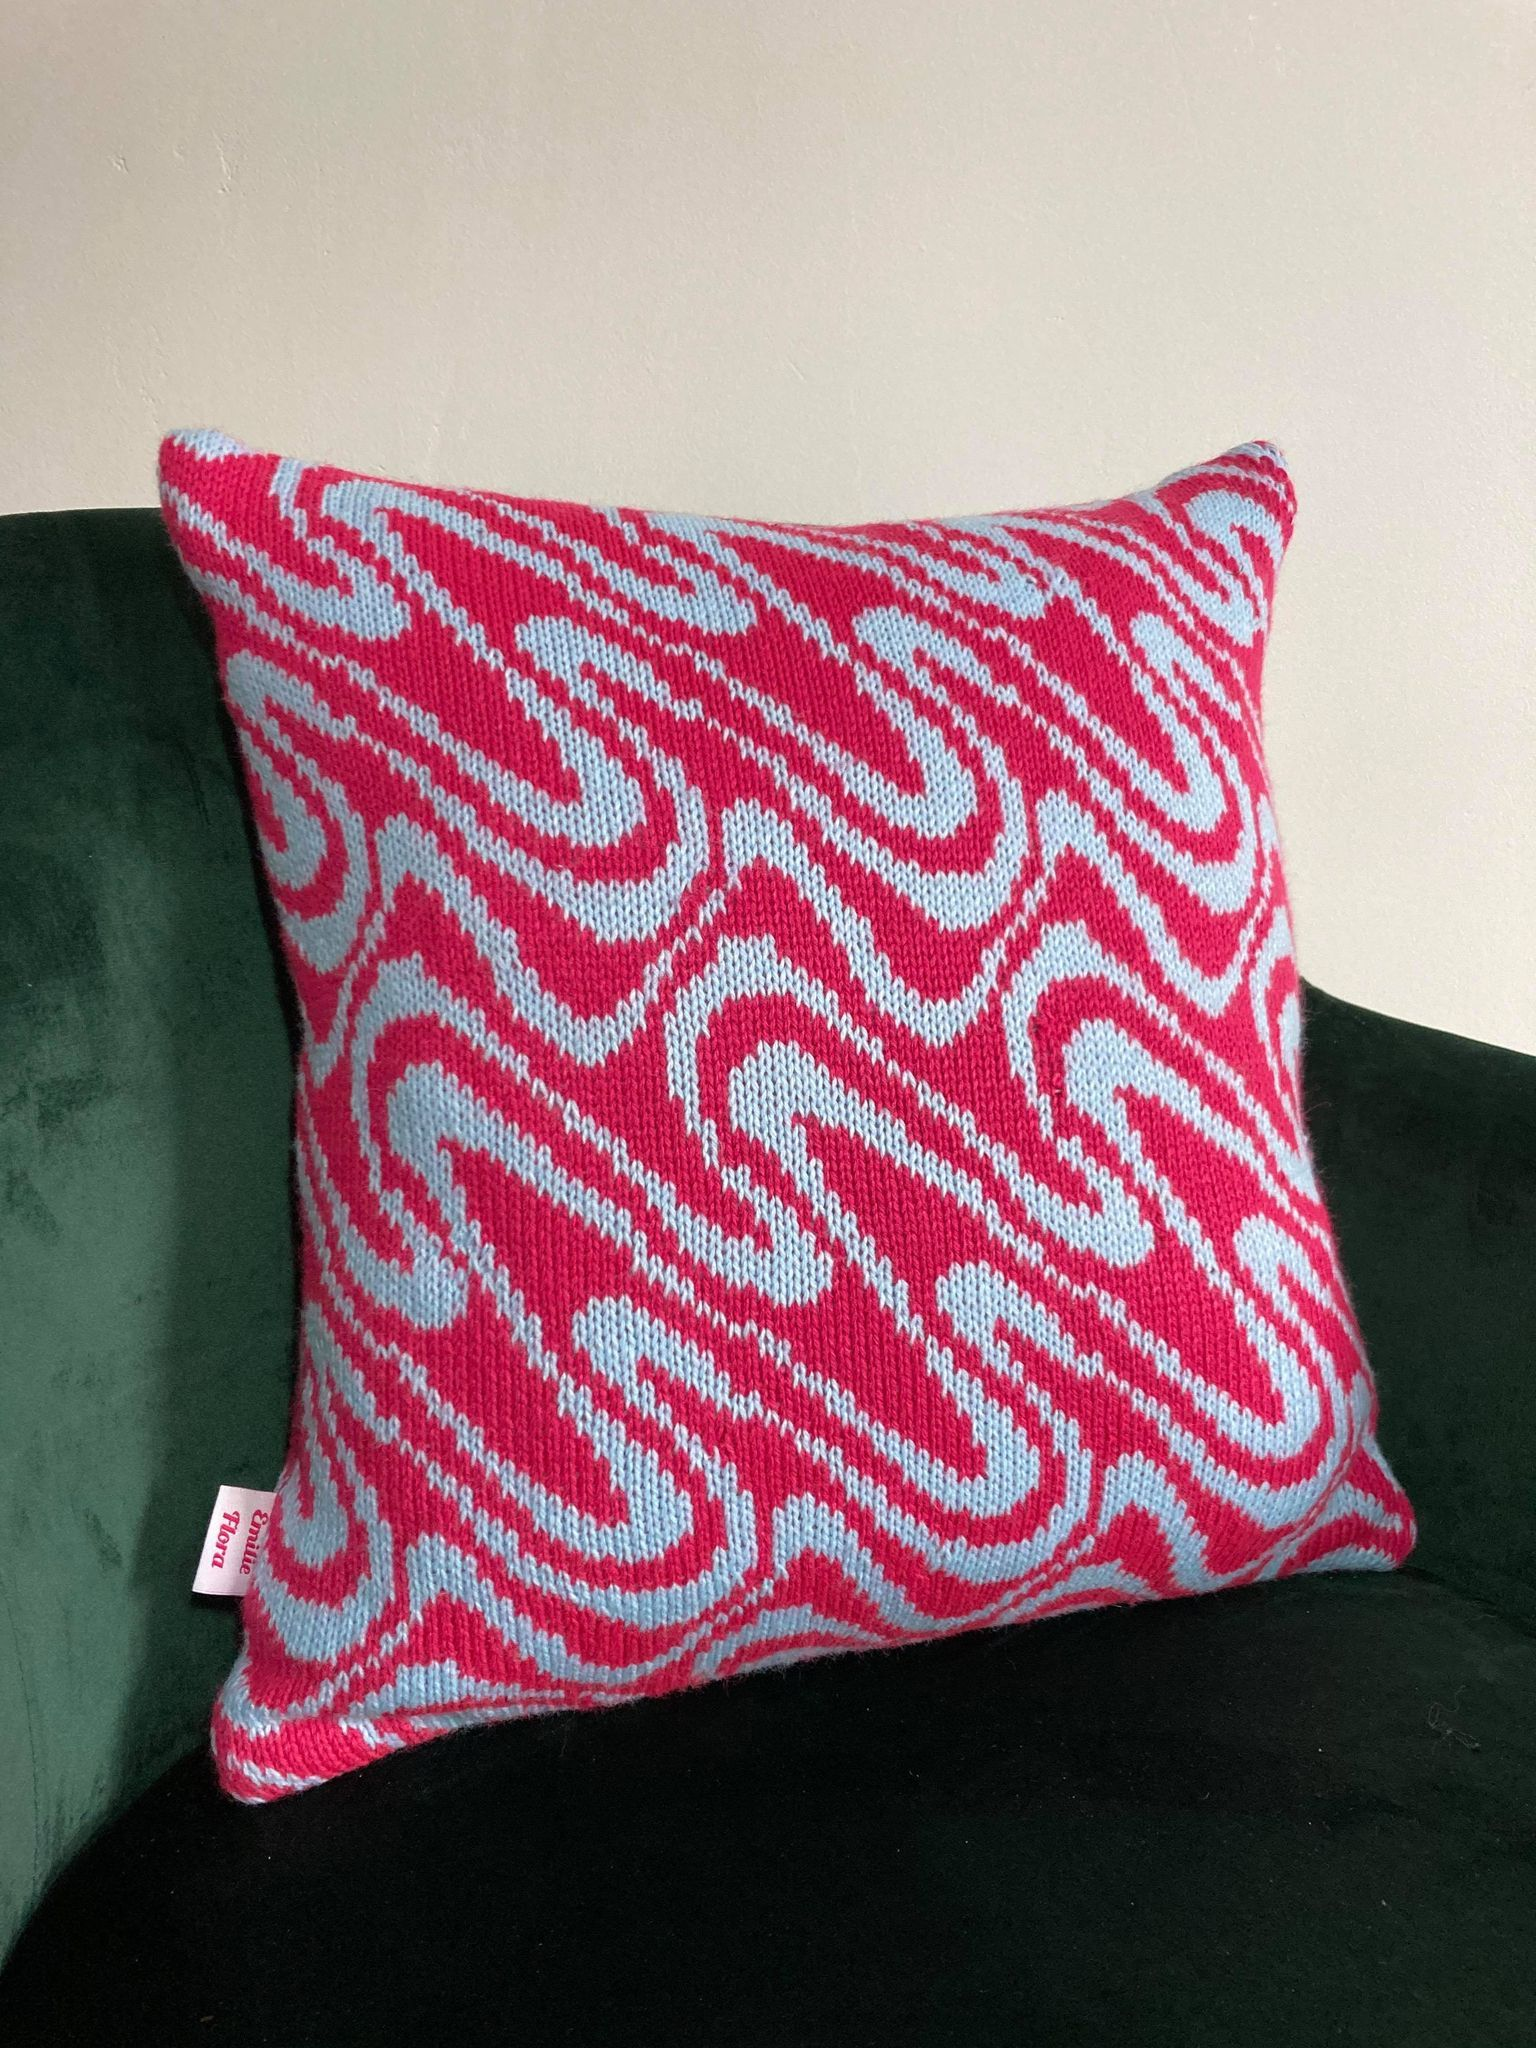 Swirly Cushion - Hot Pink andPale Blue